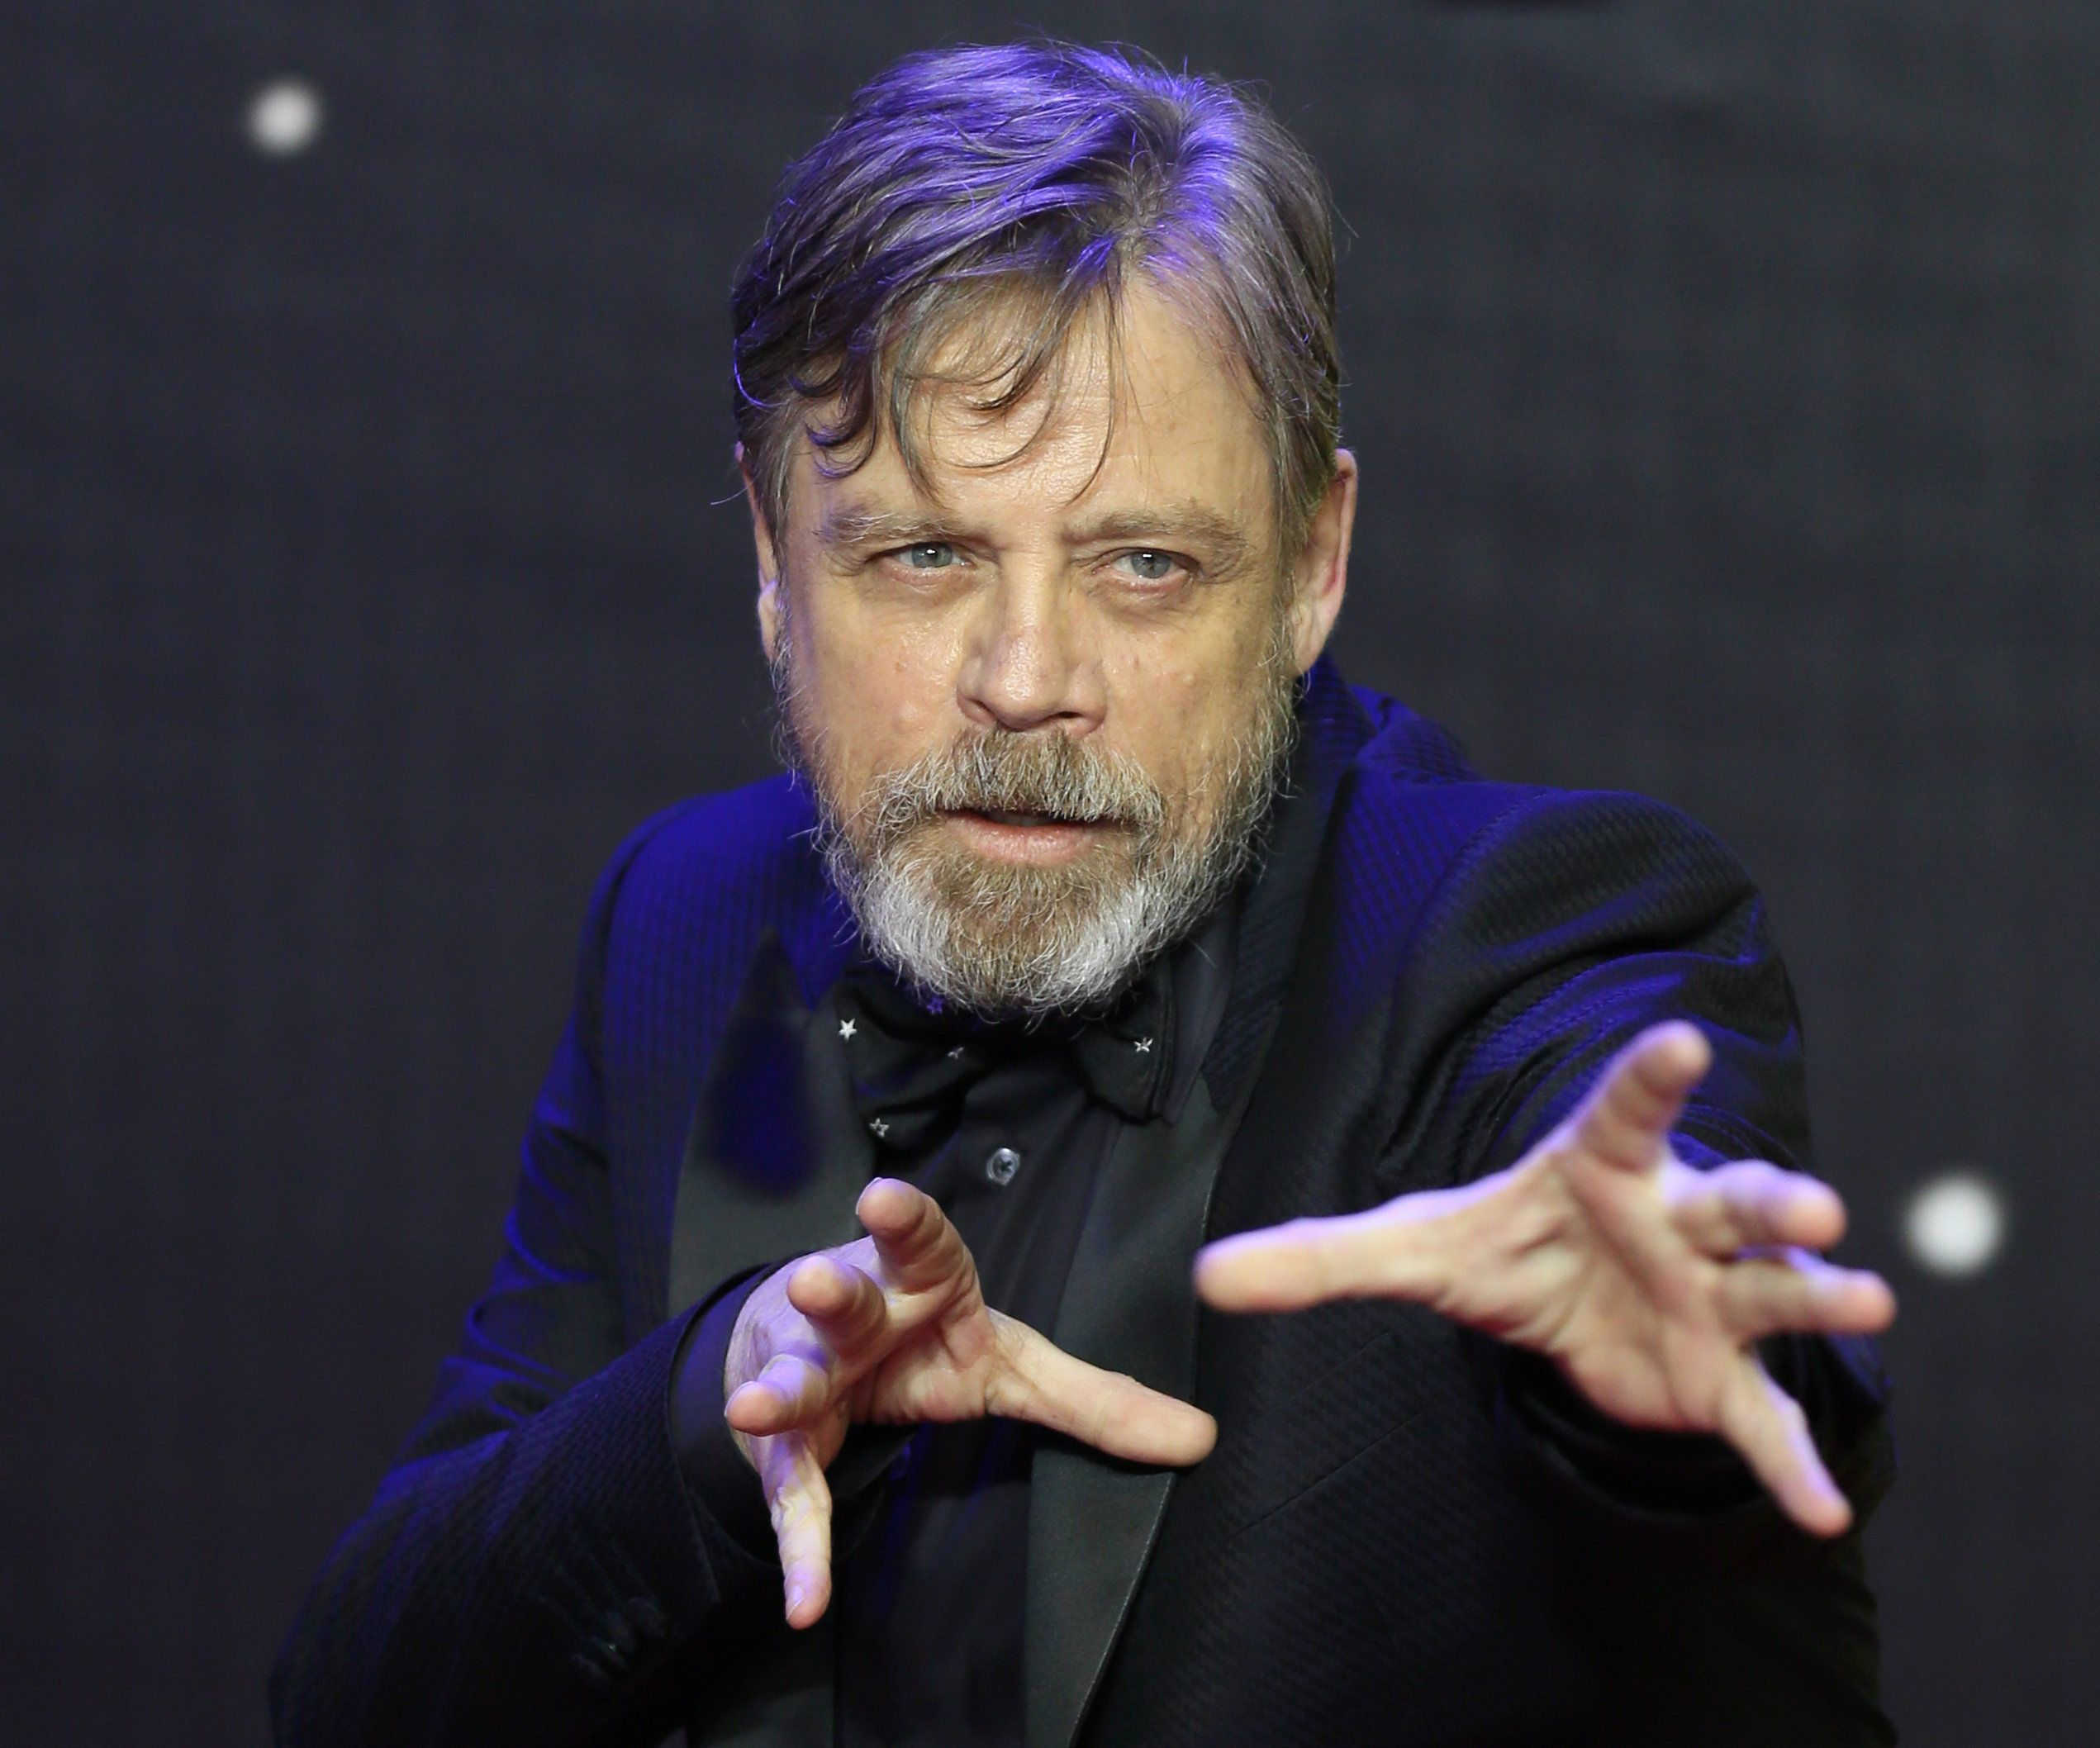 Luke Skywalker is coming back  but will be with the force or with the dark side